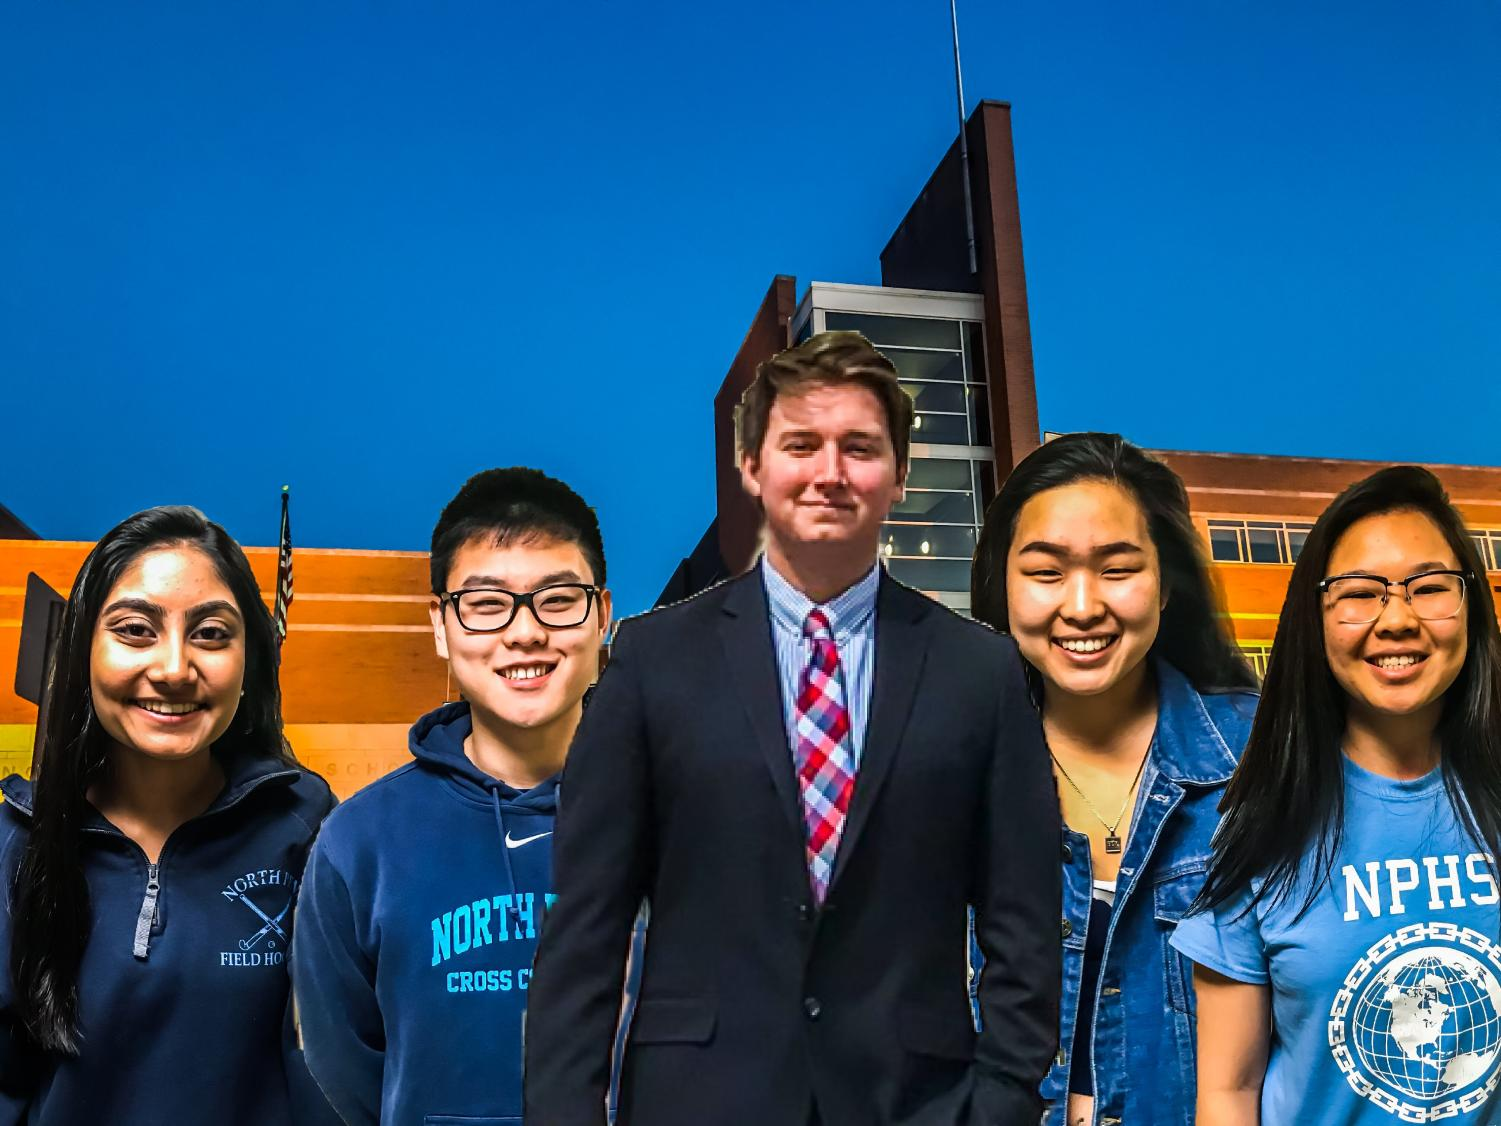 SGA- Meet the Student Government Officers for the 2018-2019 school year! (left to right: Simran Rathod, David Baik, Billy Wermuth, Katie Park, Shirin Chong)